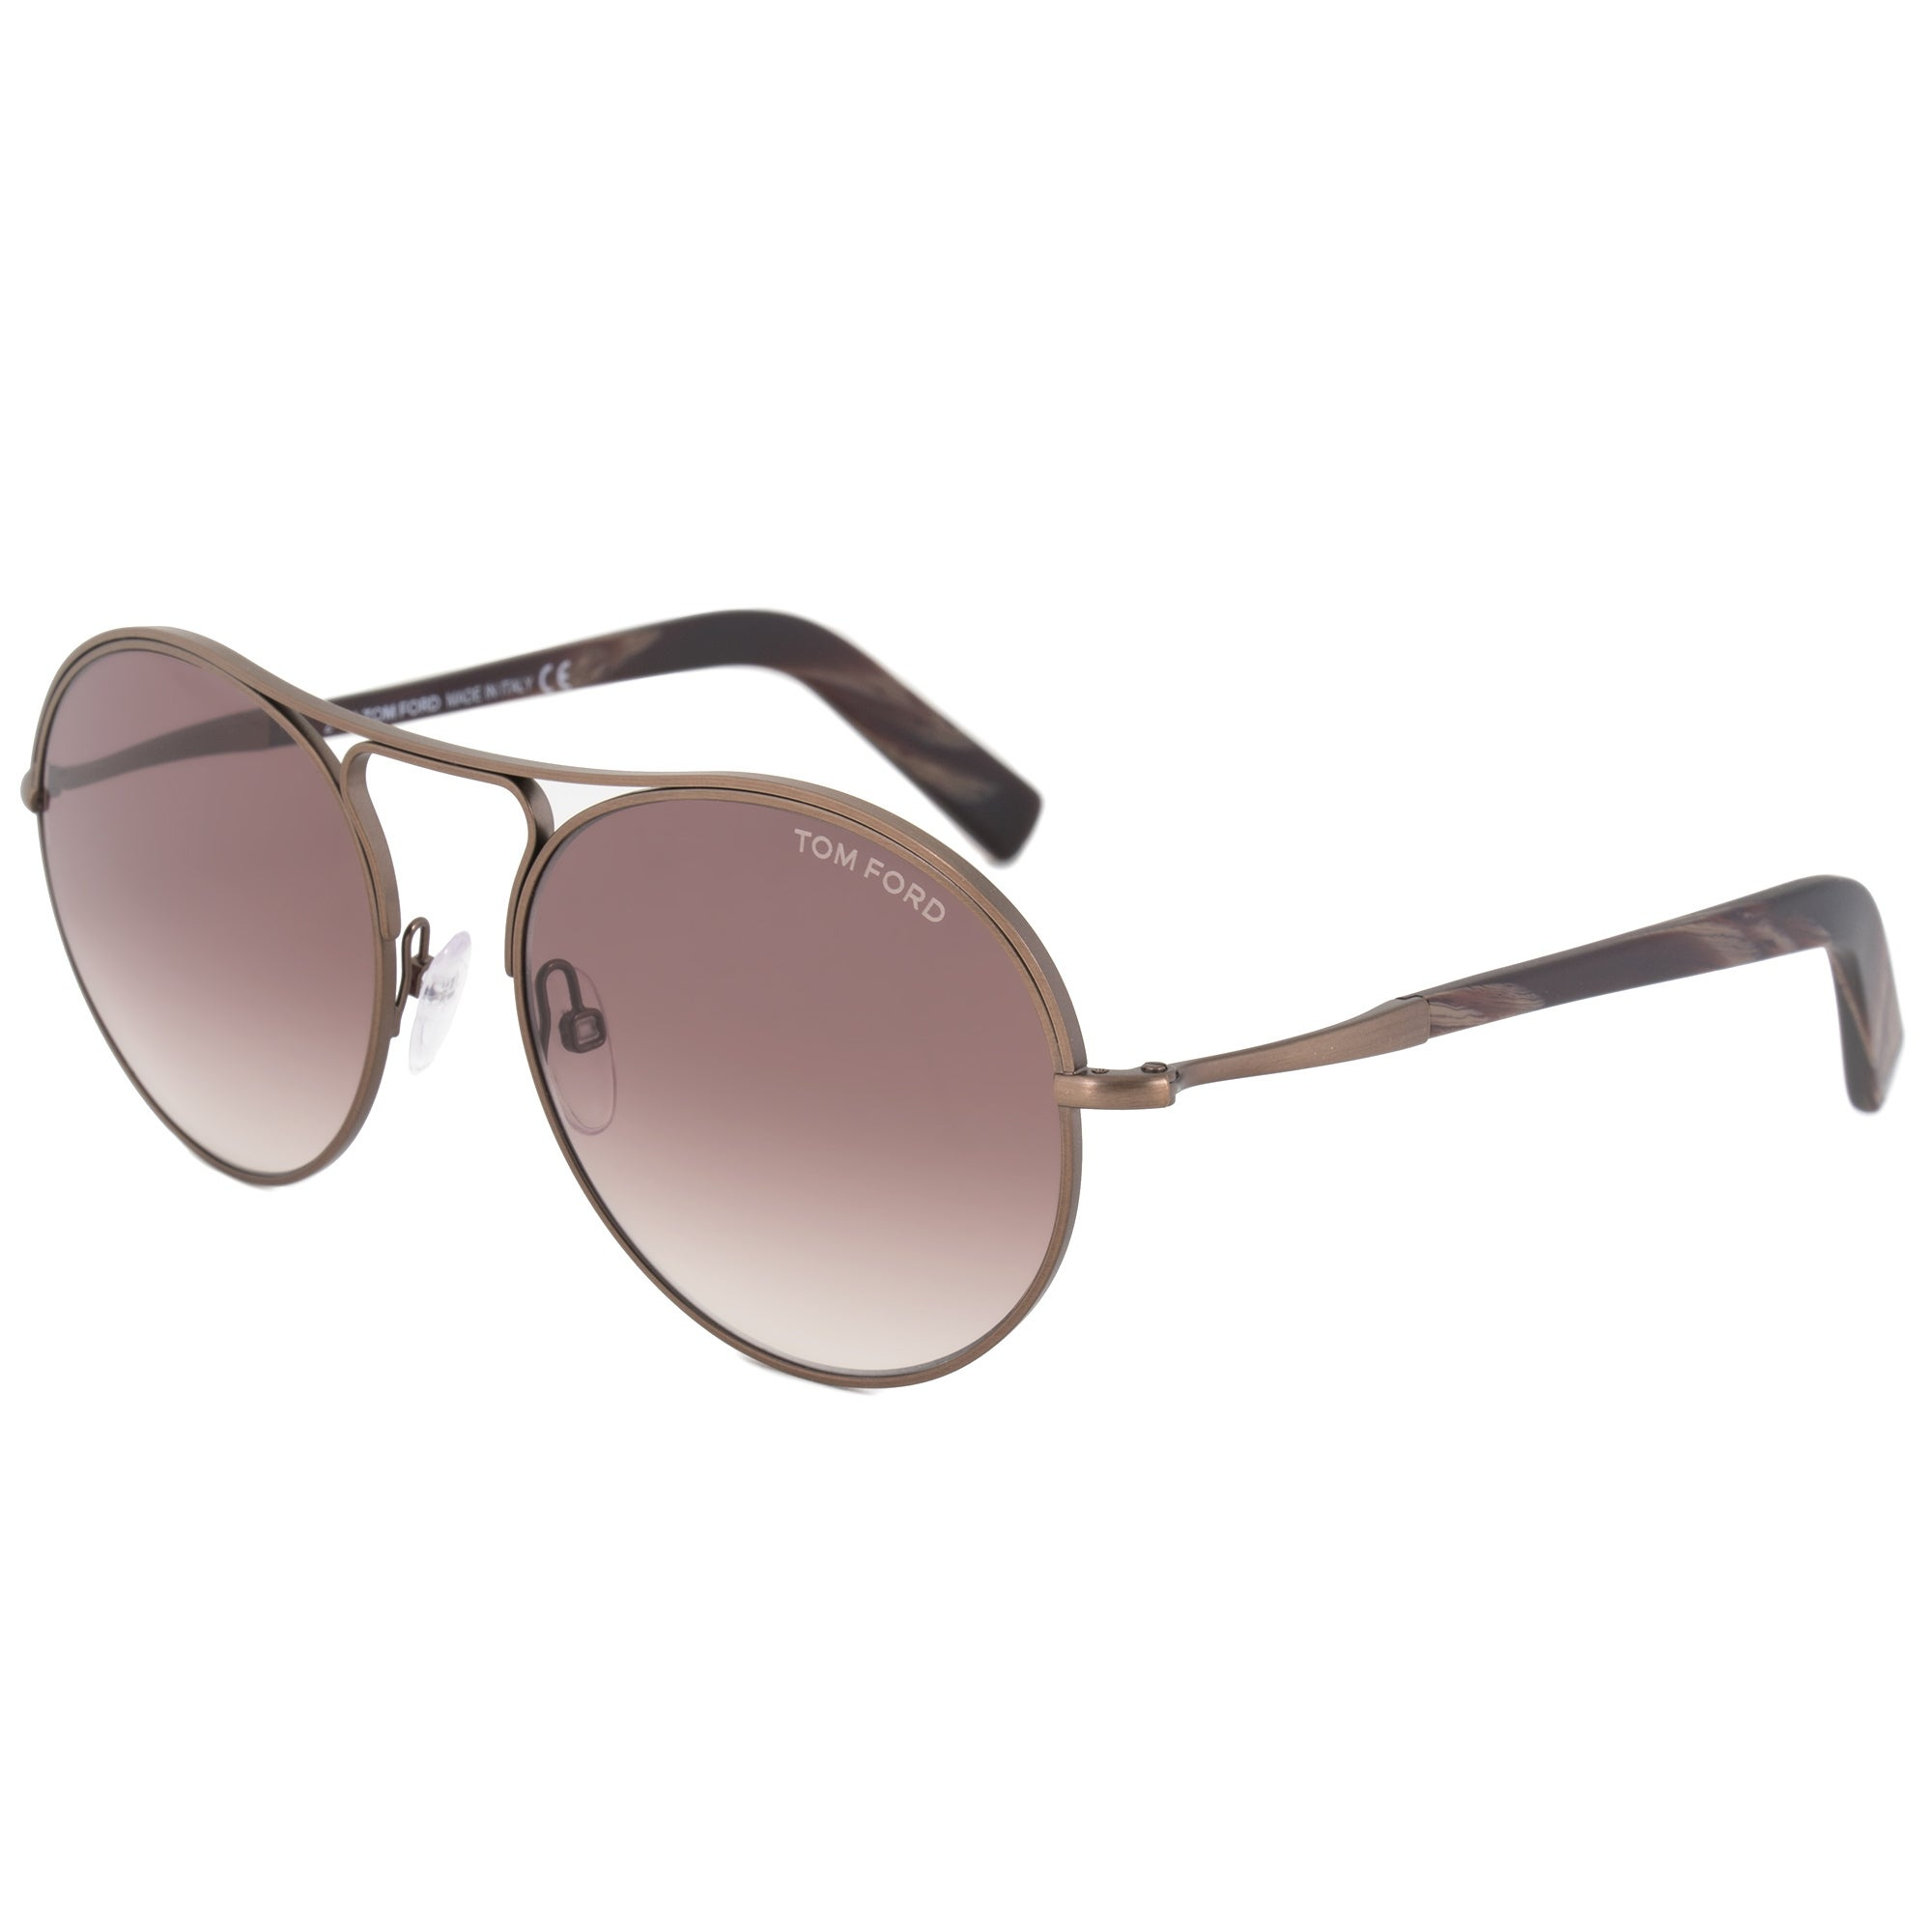 acef4b7ea6 Shop Tom Ford Jessie Women s Round Sunglasses FT0449 49T 54 - Free Shipping  Today - Overstock - 19622868